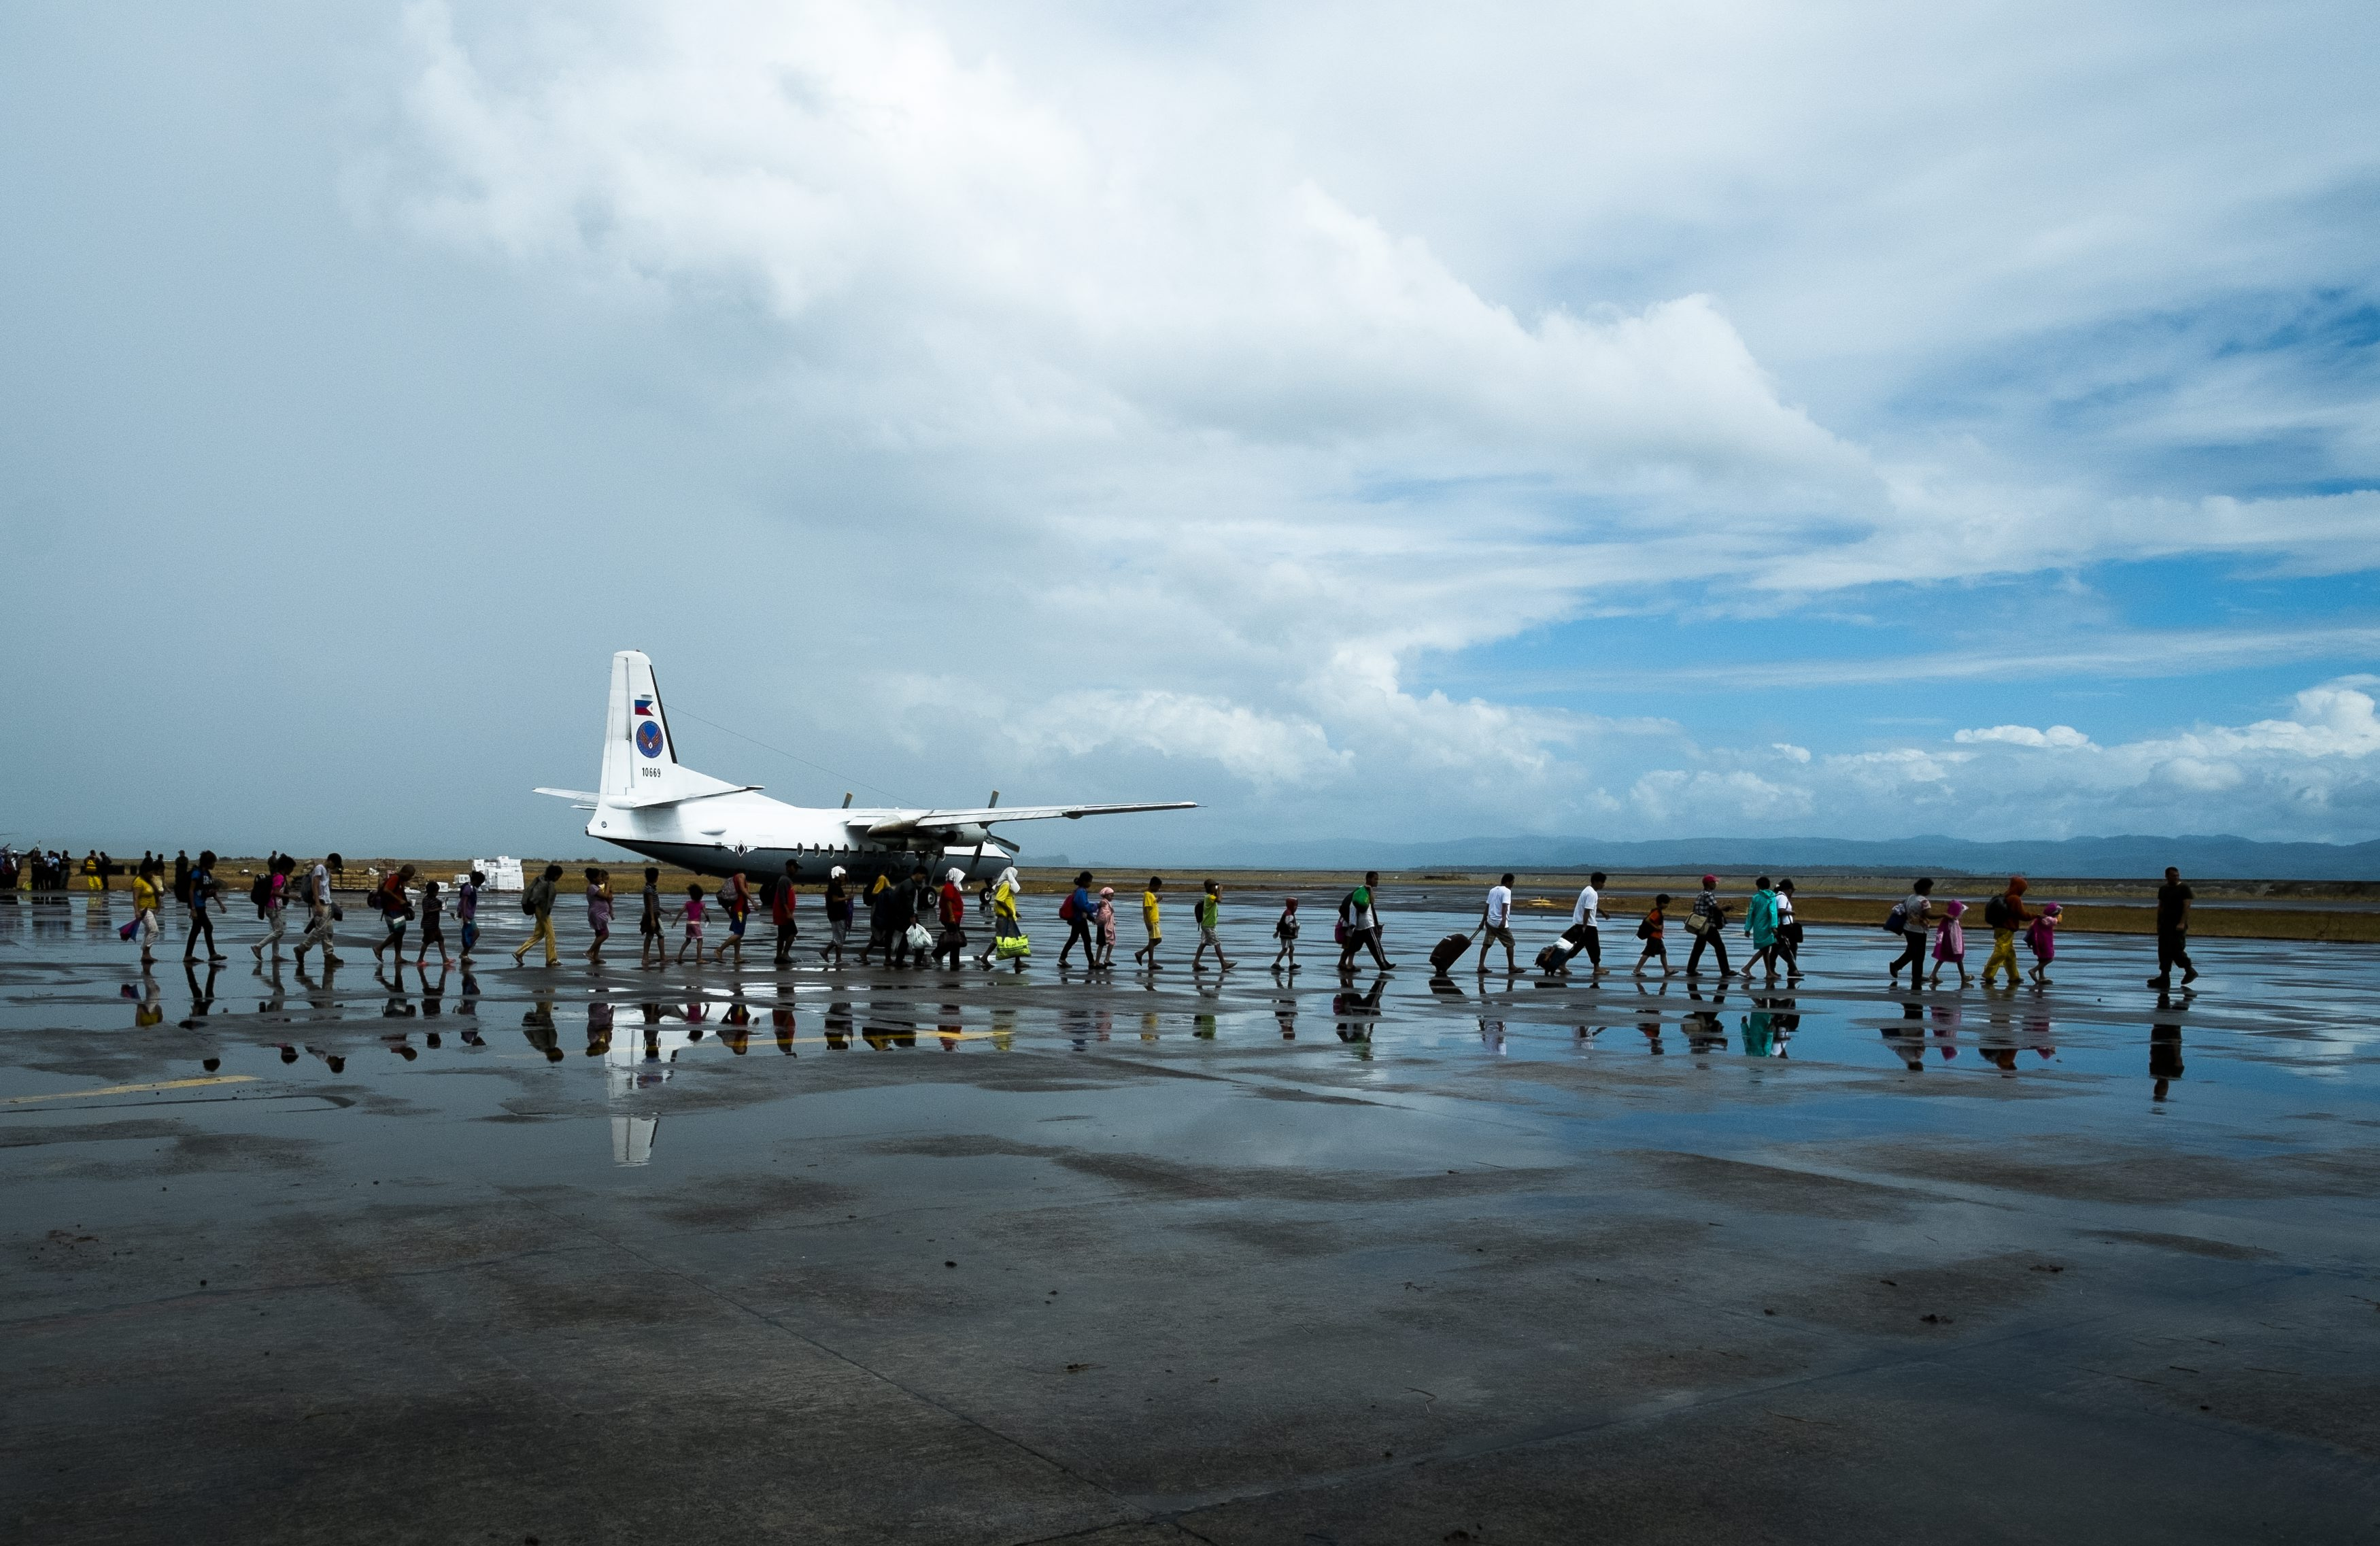 Philippines/ Haiyan Typhoon/Passengers line up to board C-130 plane for Cebu City at the tarmac of the damaged Tacloban Airport./ UNHCR/ R.Rocamora / November 2013